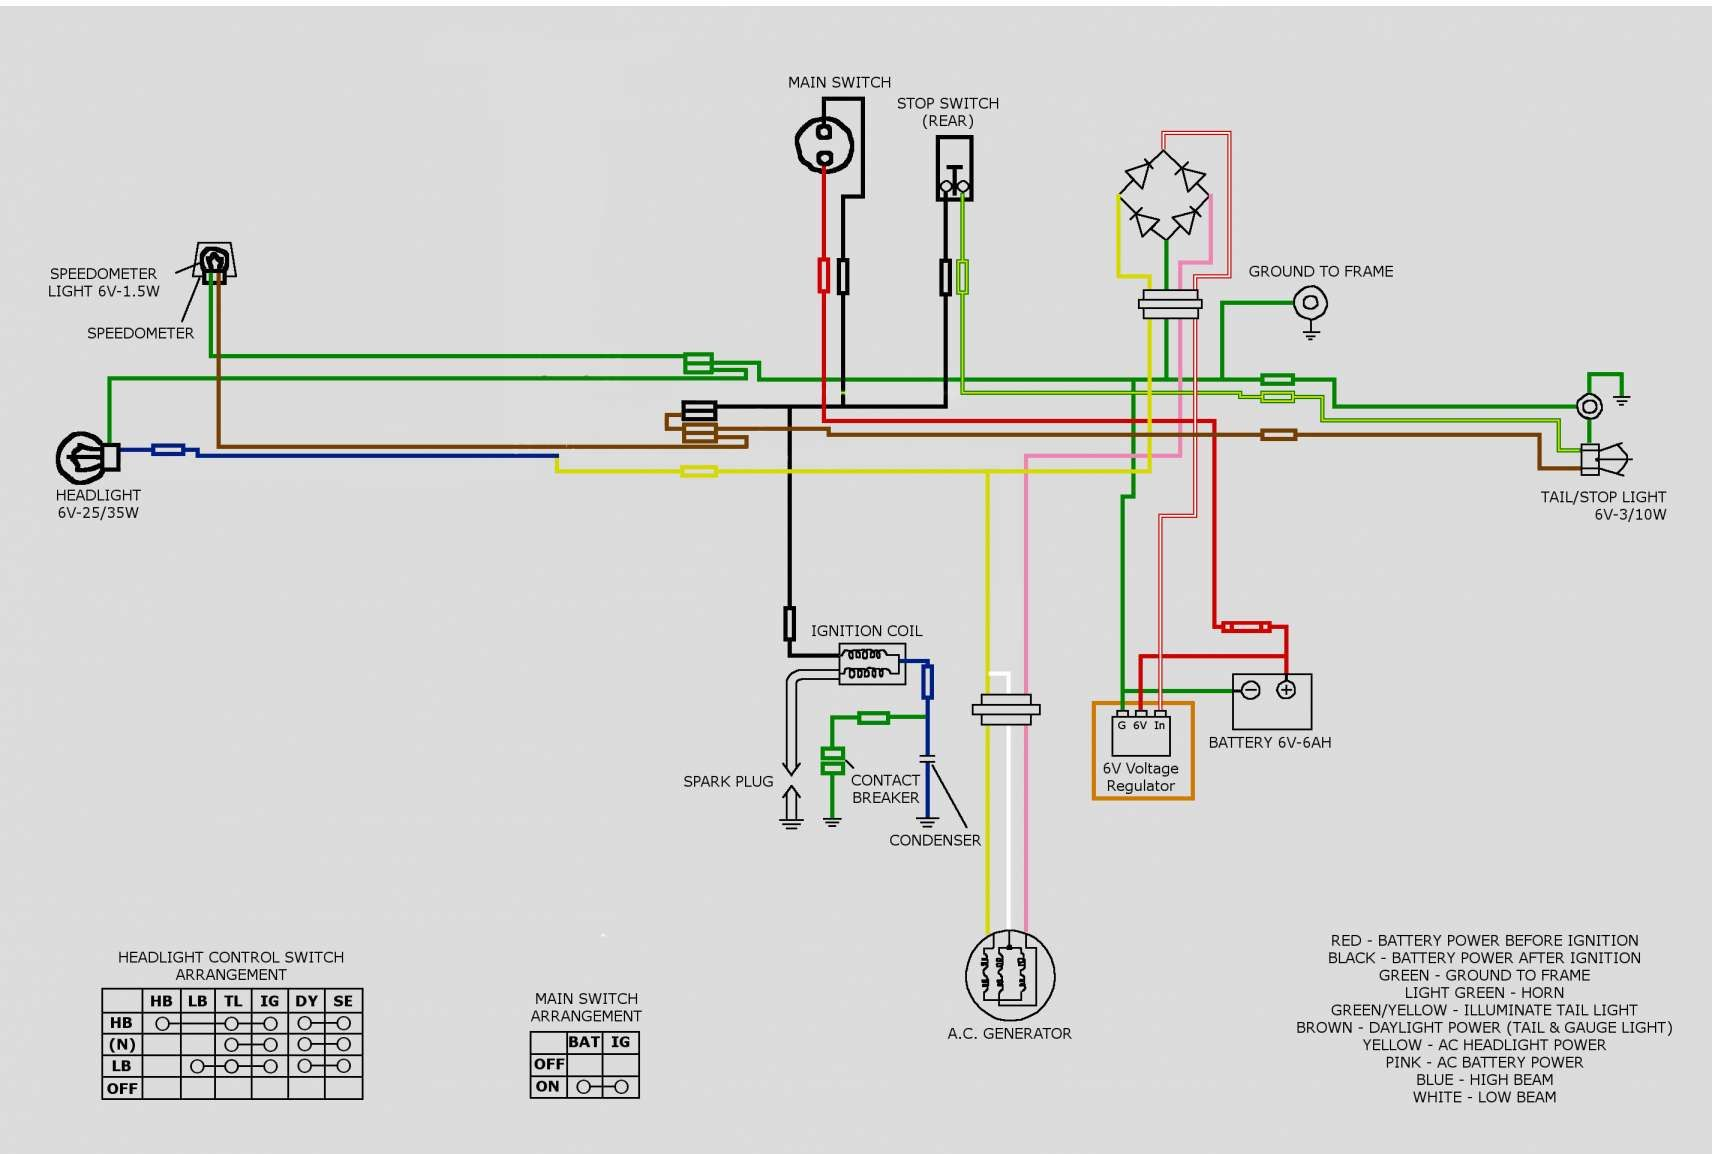 10 Simple Wiring Diagram For 6v Motorcycle Motorcycle Diagram Wiringg Net In 2020 Motorcycle Wiring Diagram Motorcycle